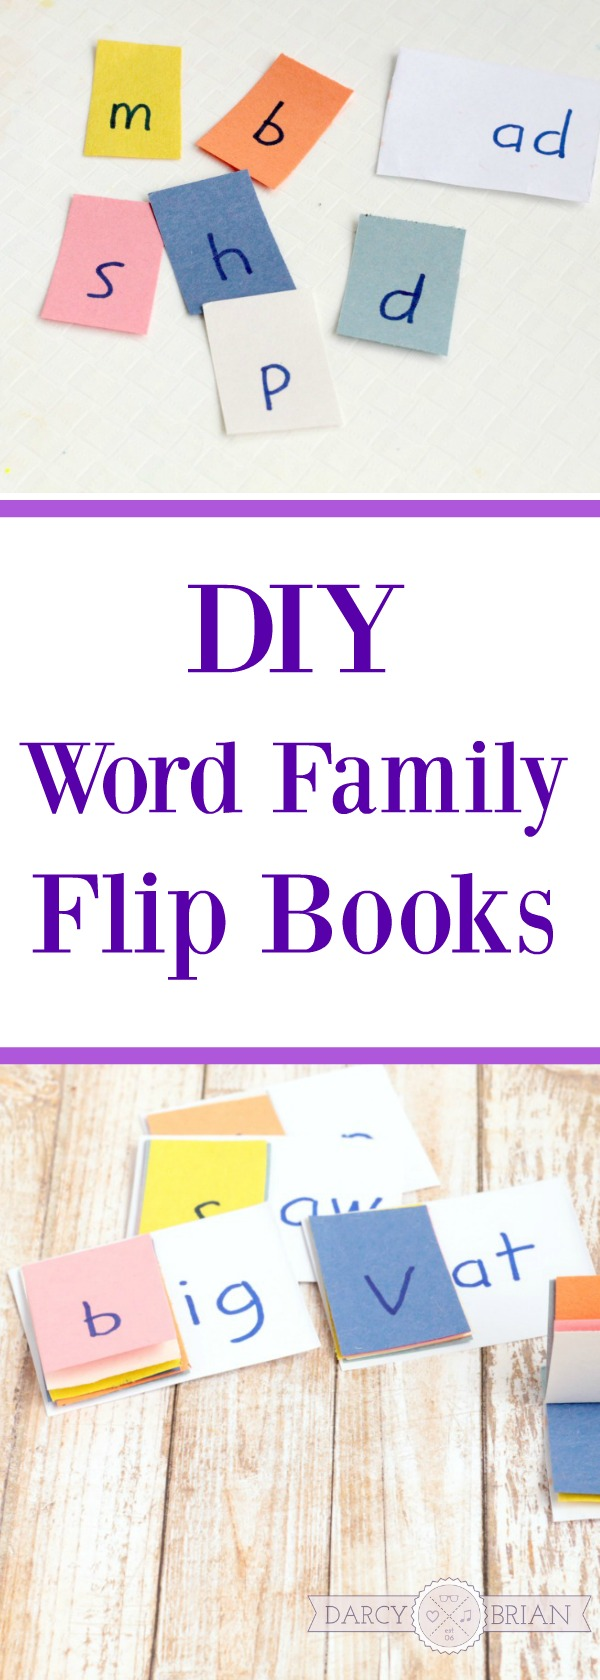 These word family flip books are so easy to make! Looking for fun learning activities to help your kindergartner learn how to read? Make your own DIY sight word family flip book for kindergarten and preschool kids!